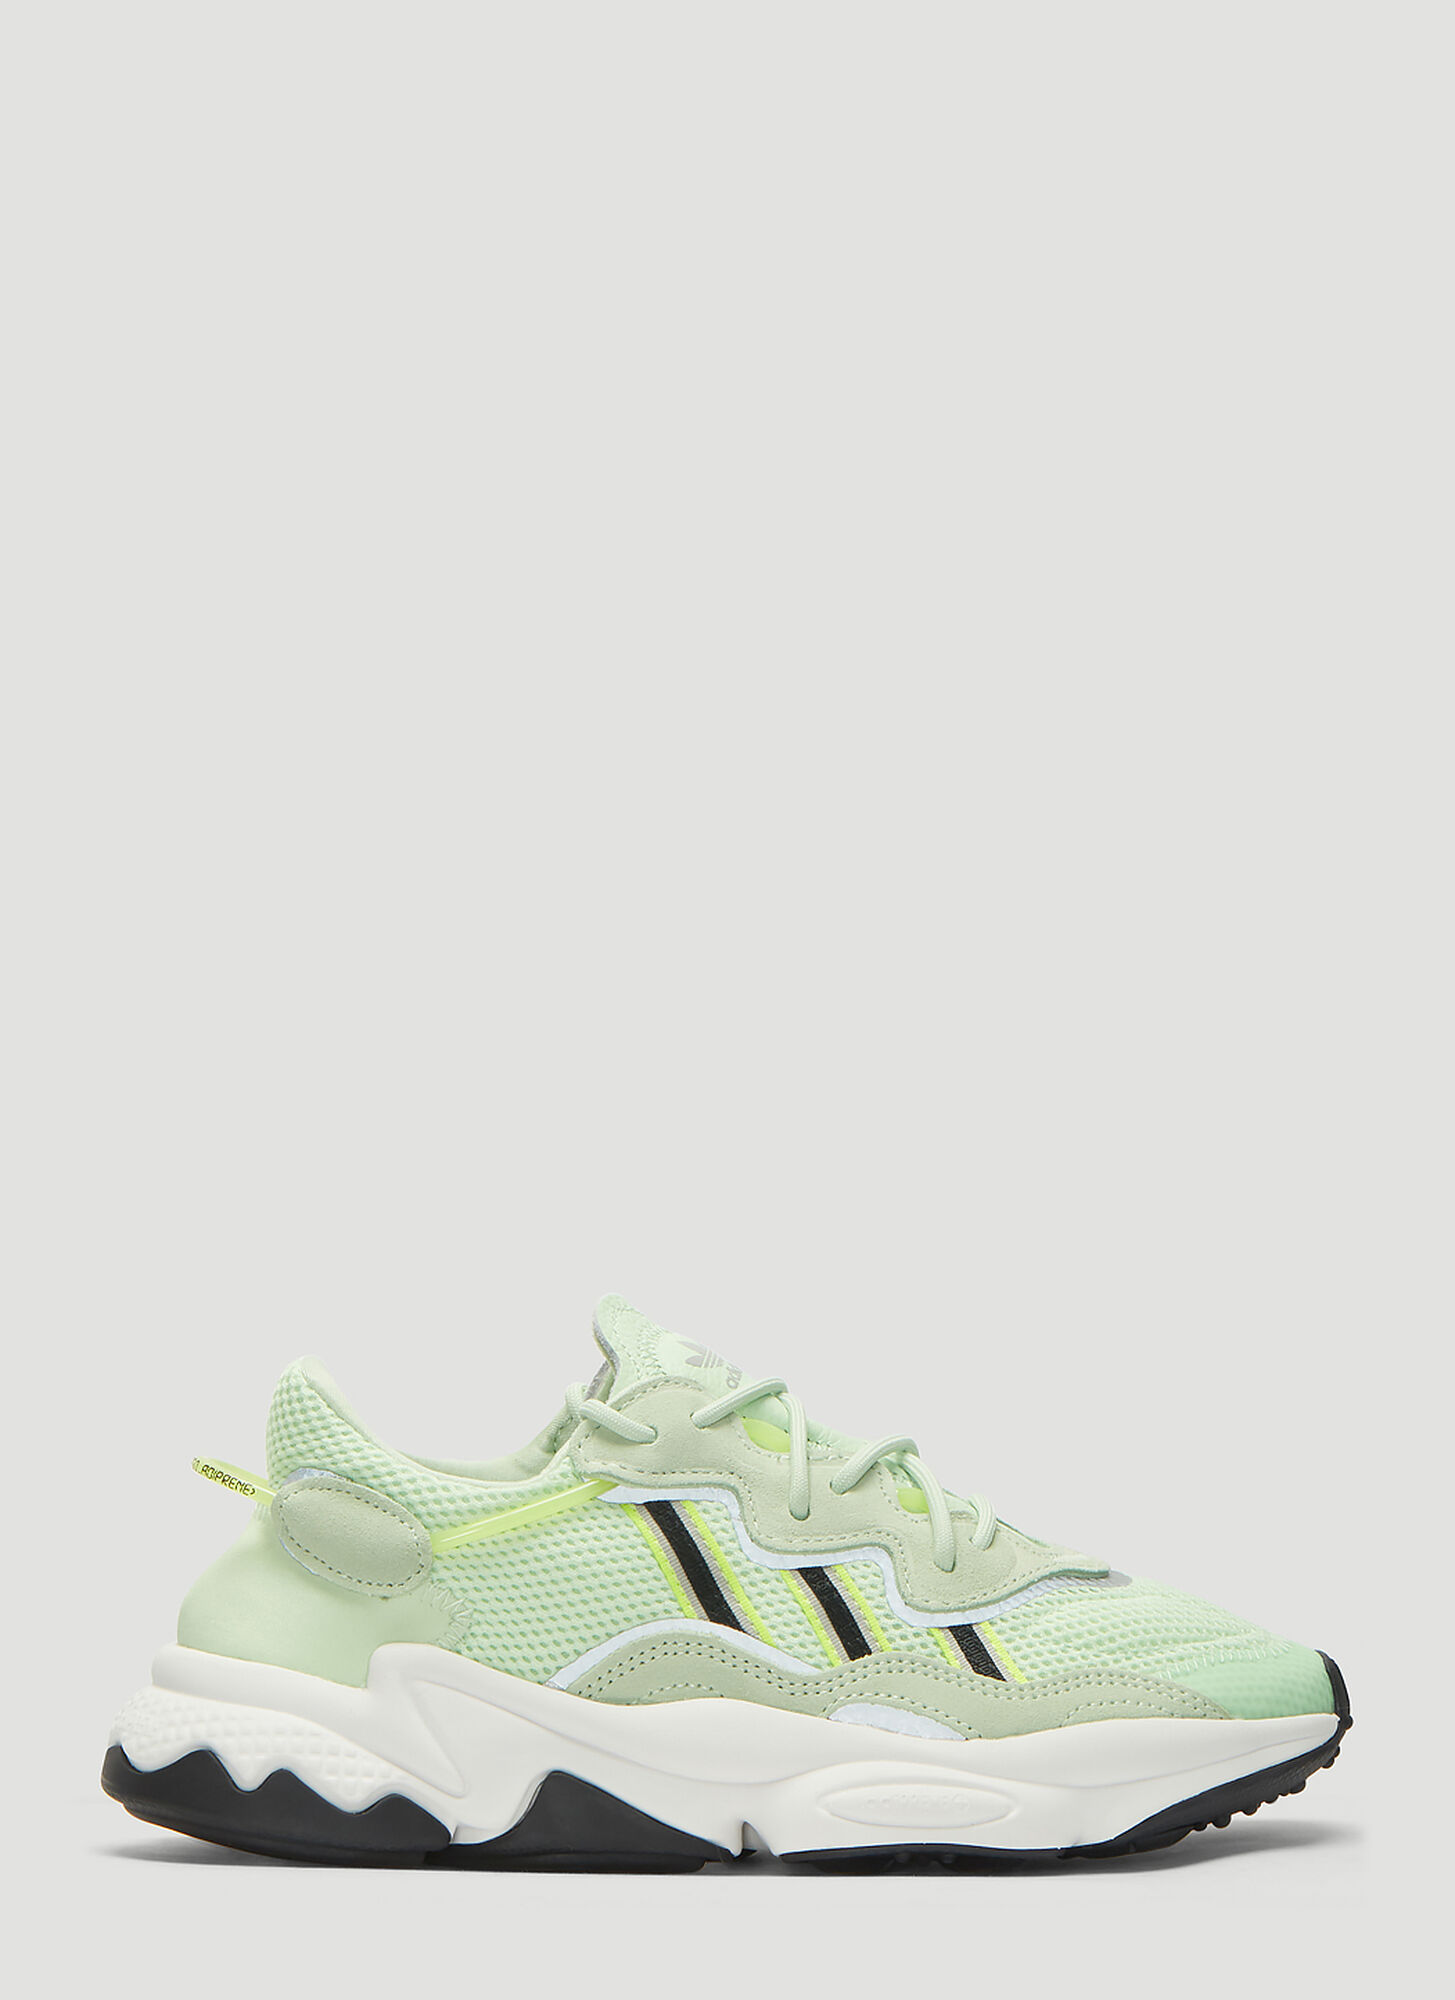 Adidas Ozweego Sneakers in Green